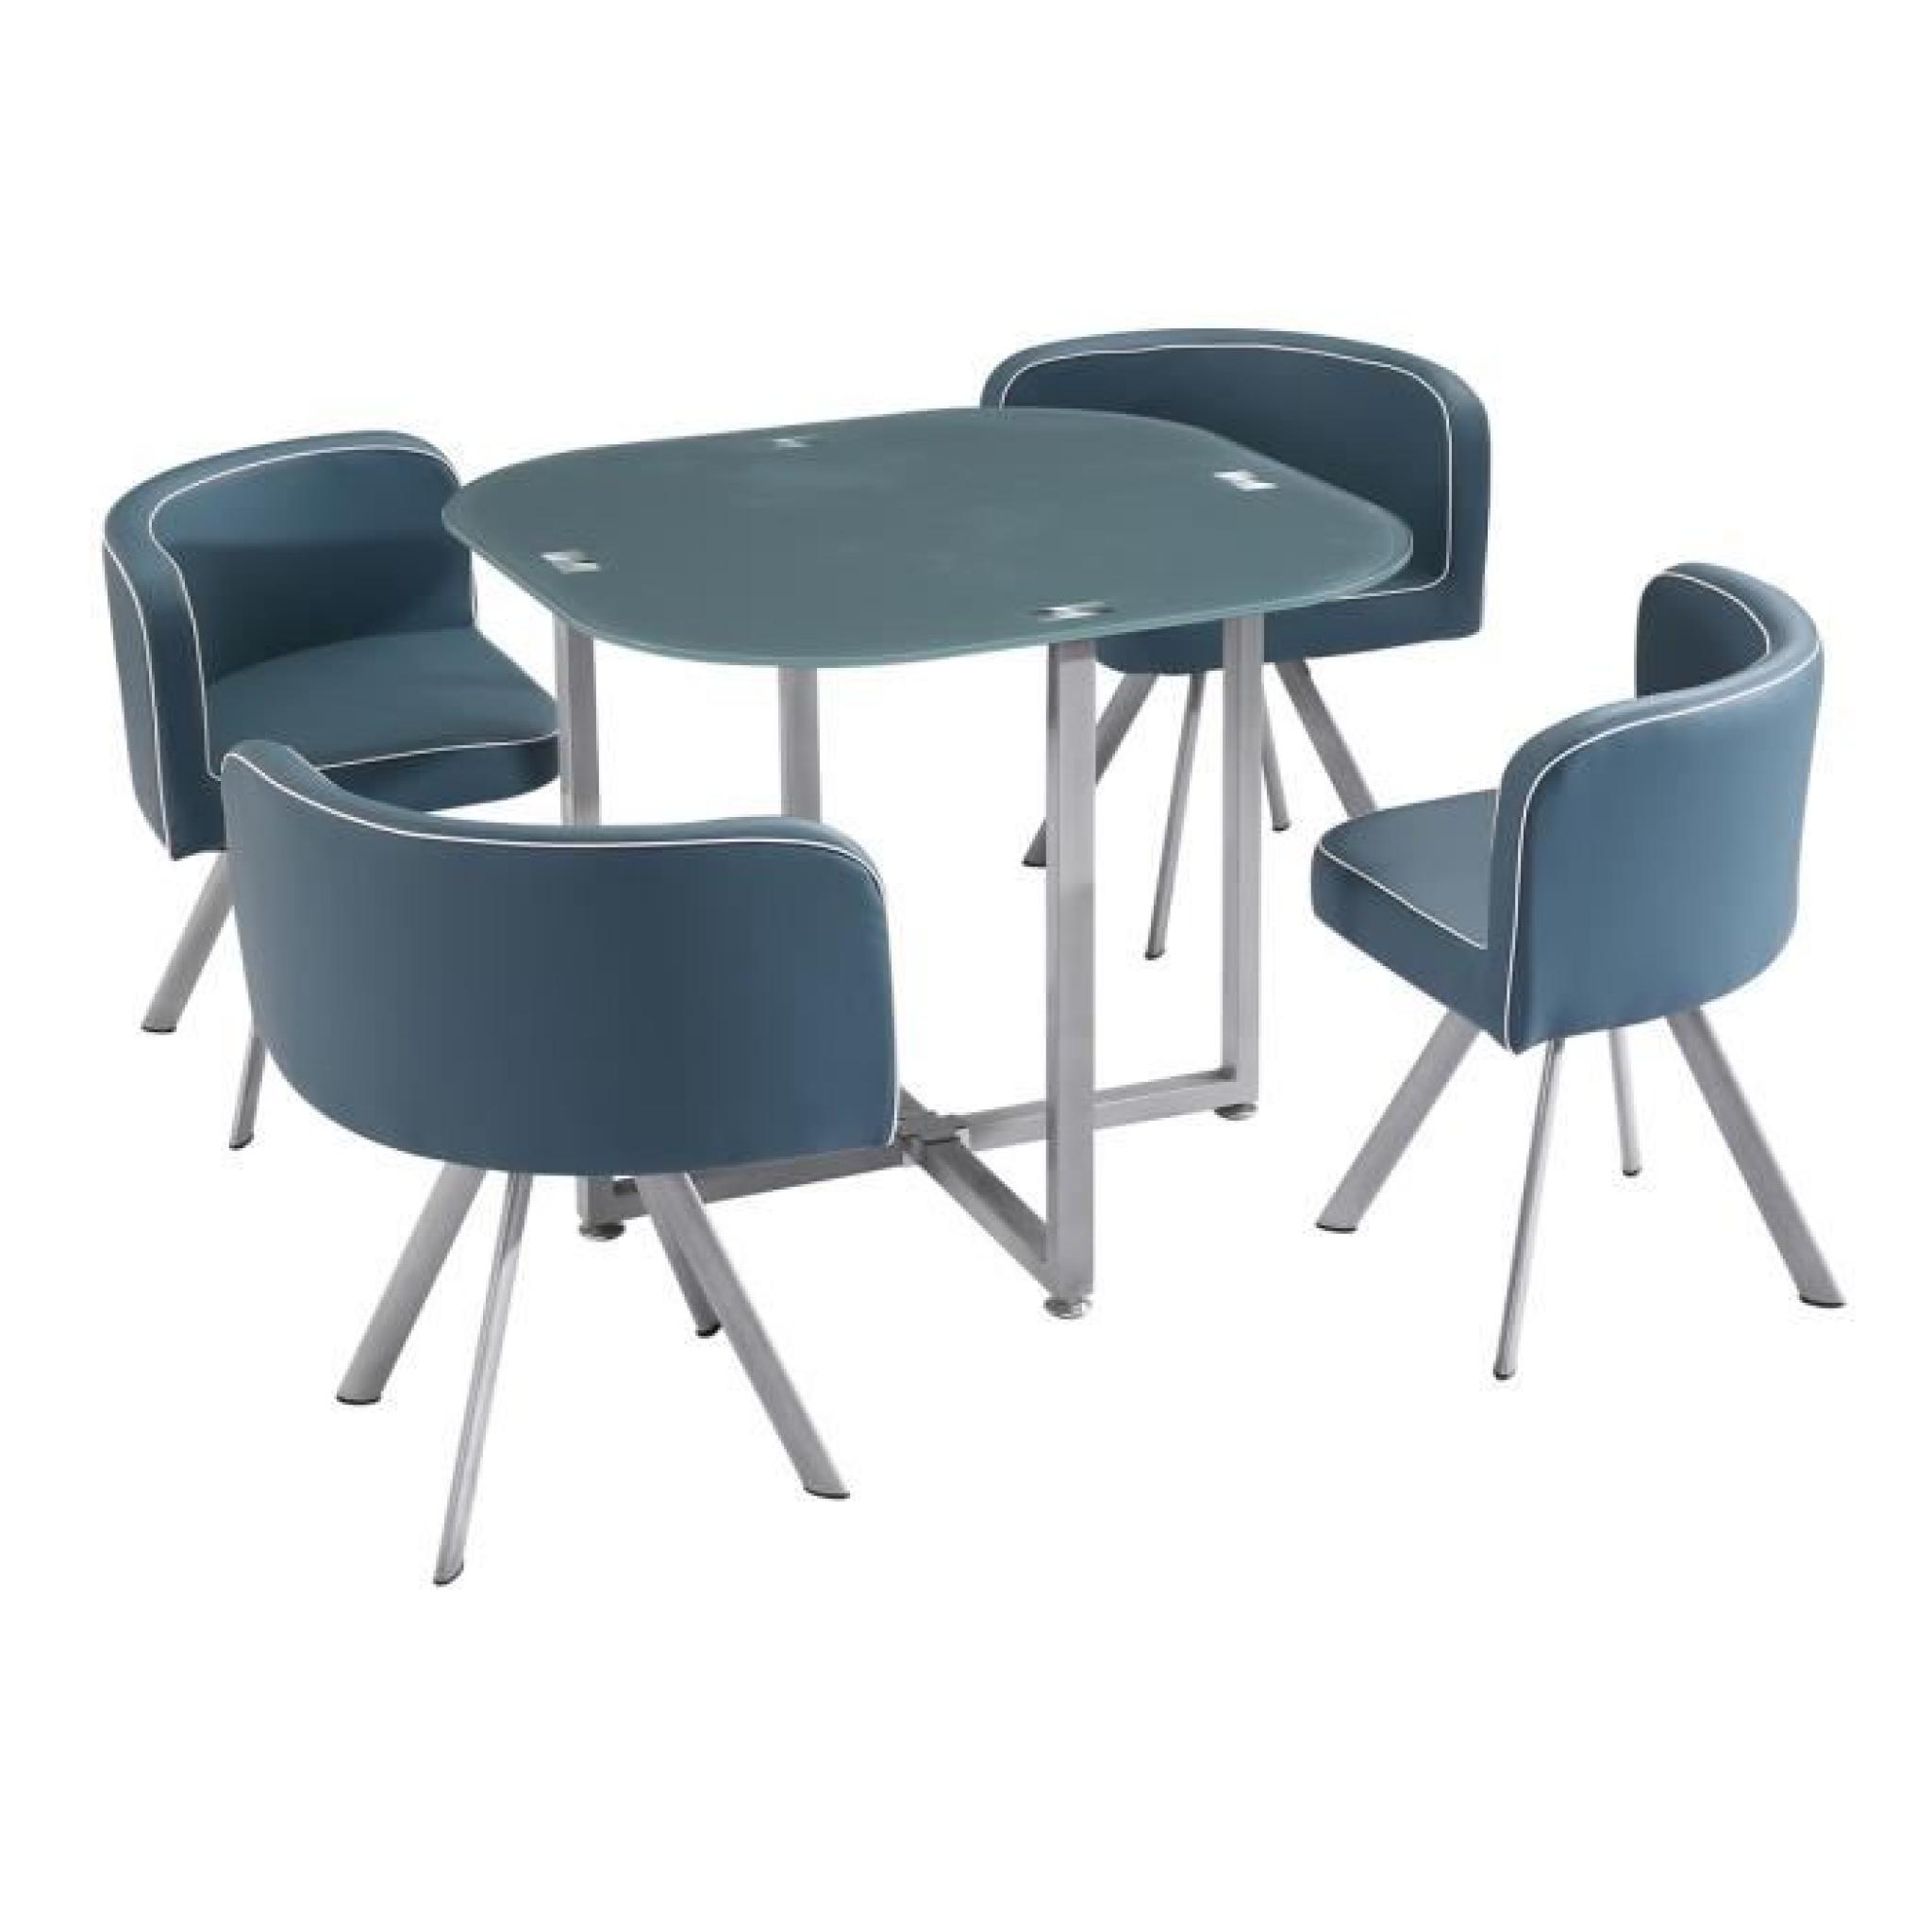 Ensemble table a manger et chaise pas cher maison design for Ensemble table 6 chaises pas cher